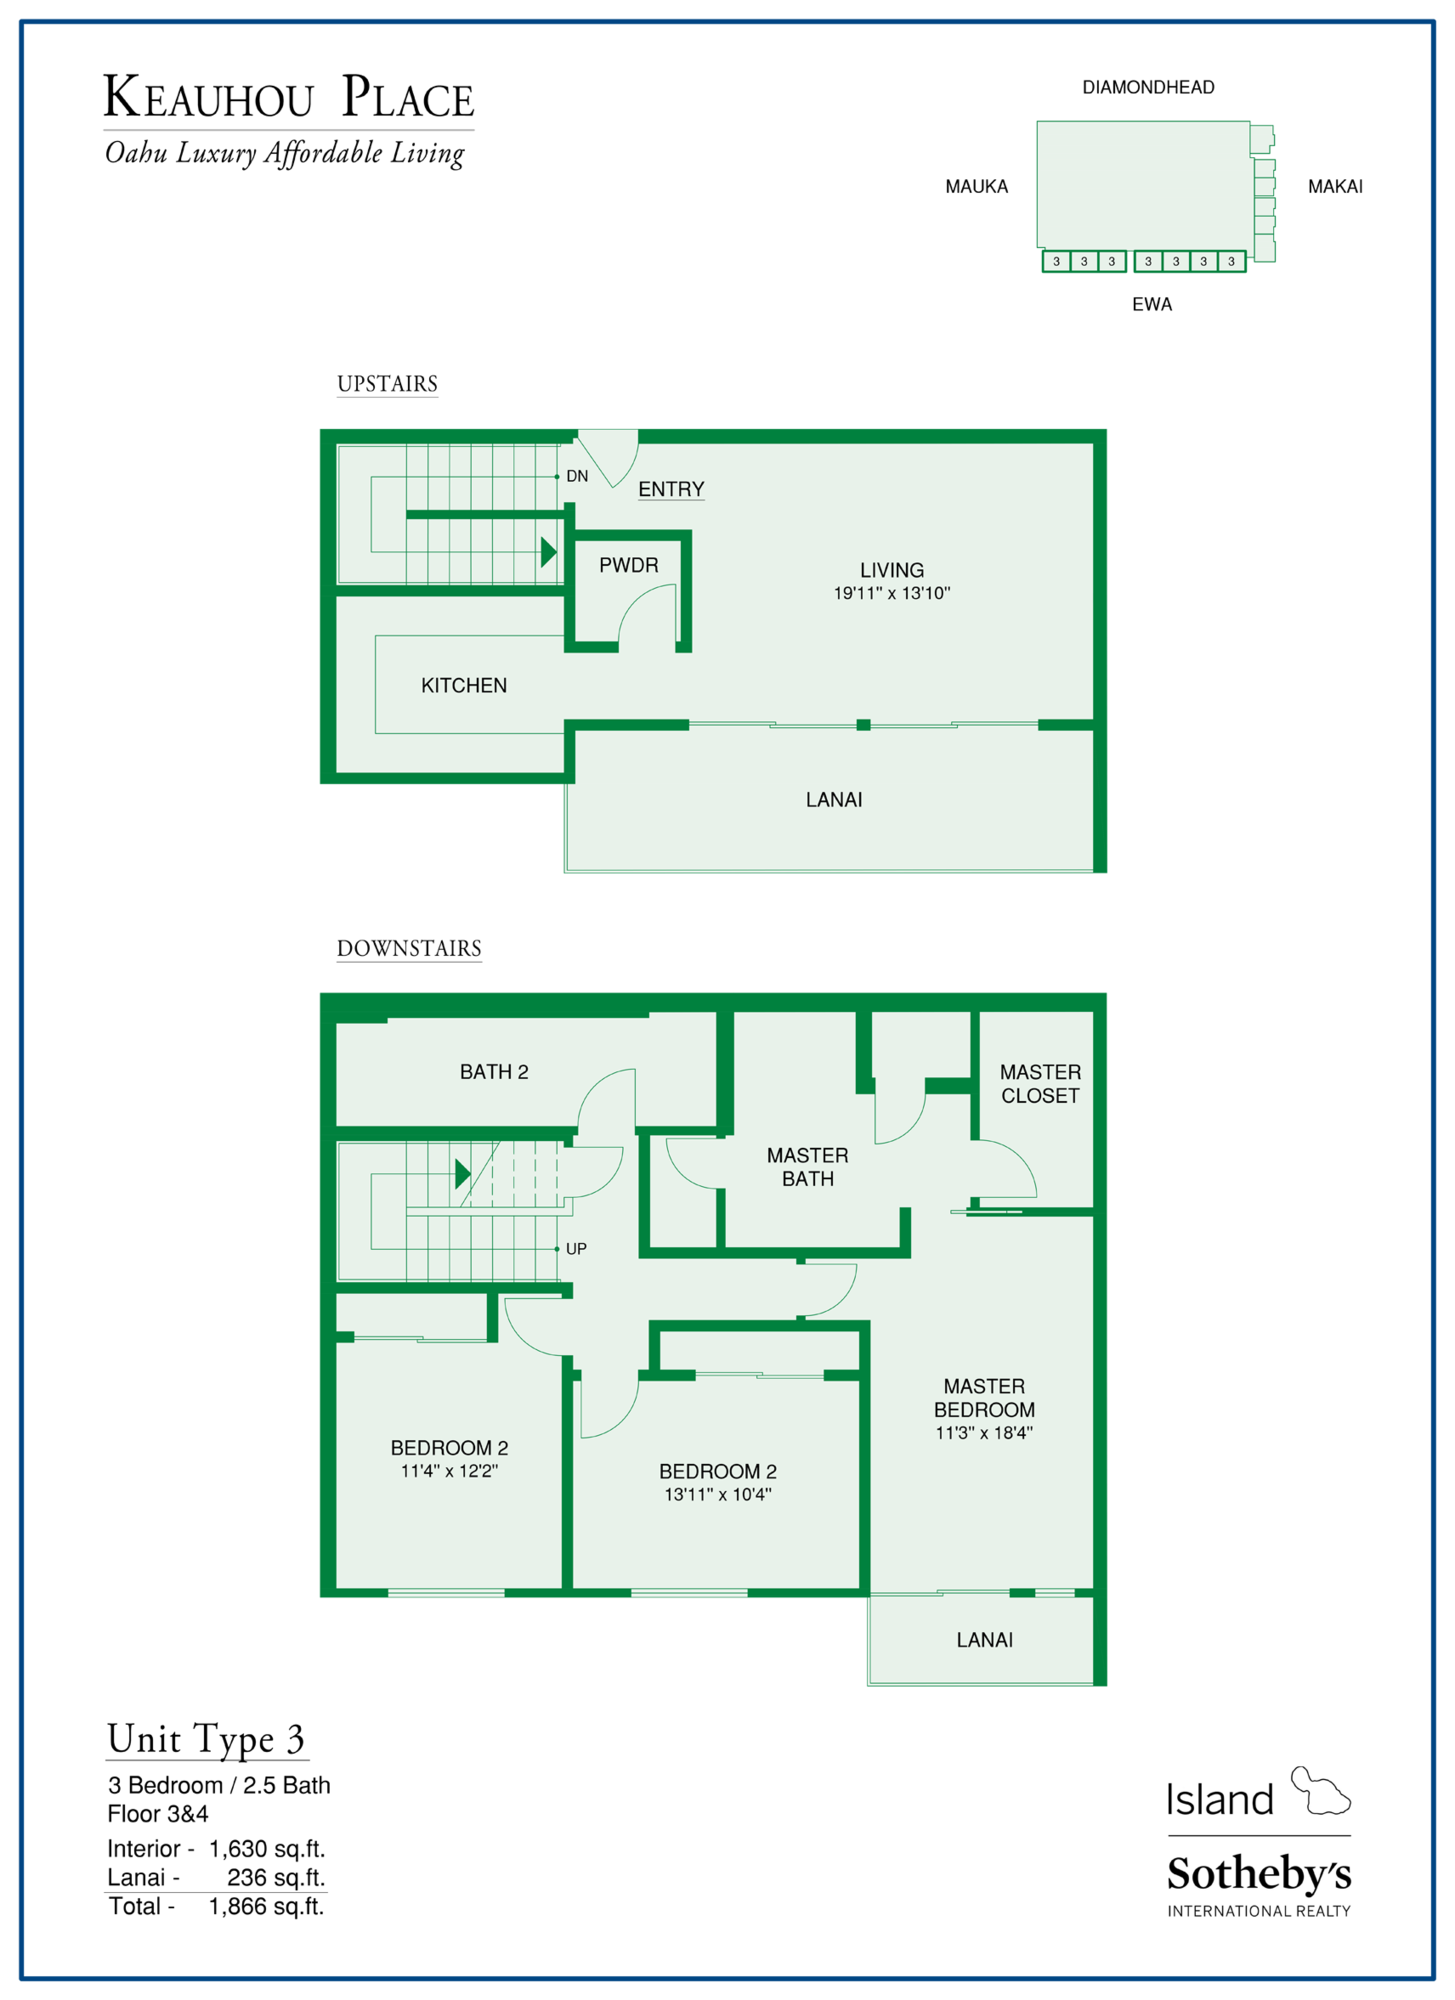 keauhou place floorplan in kakaako